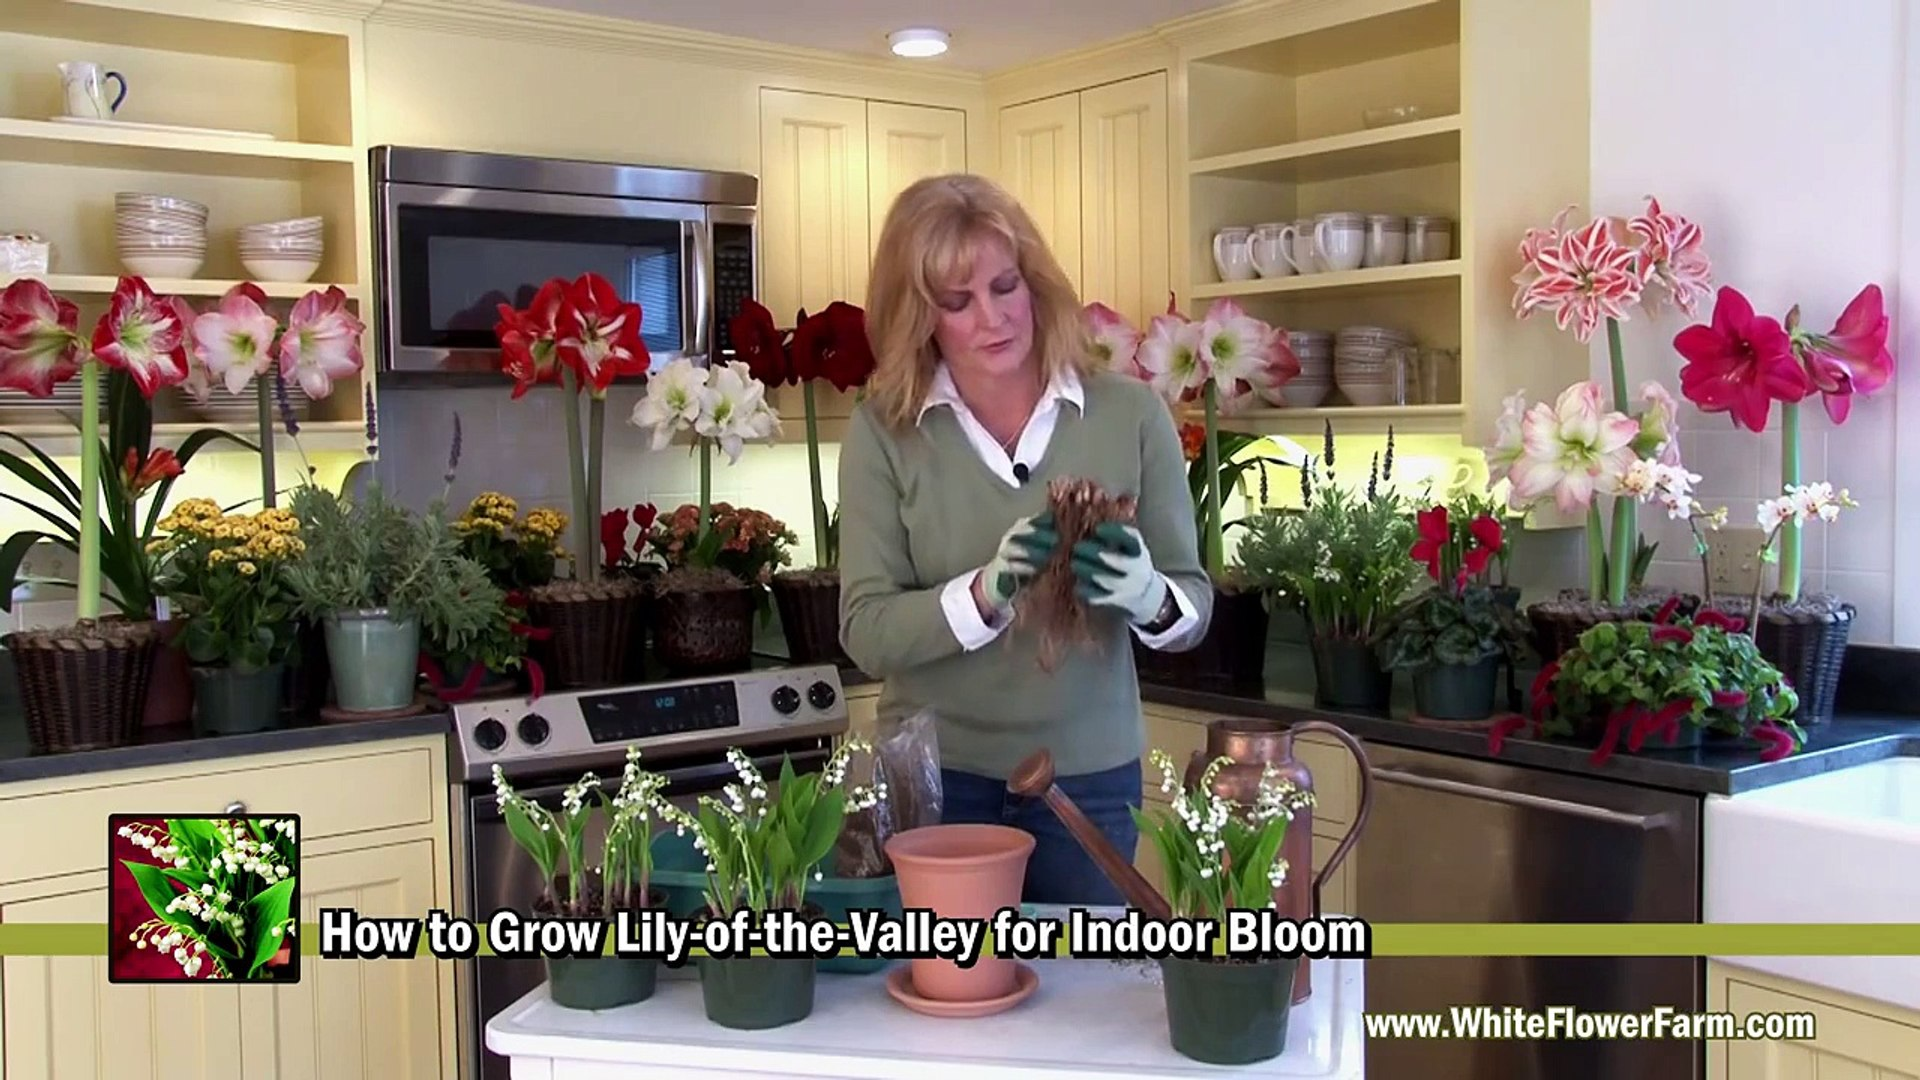 How to Grow Lily-of-the-Valley Indoors - White Flower Farm ... House Plant Lily Of The Valley on house plant banana, house plant candy cane, house plant dracaena, house plant sage, house plant caladium, house plant vinca, house plant fern, house plant strawberry, house plant datura, house plant dogwood, house plant asparagus, house plant cyclamen, house plant ivy, house plant azalea, house plant lime, house plant orchid, house plant ylang ylang, house plant eucalyptus, house plant thyme,